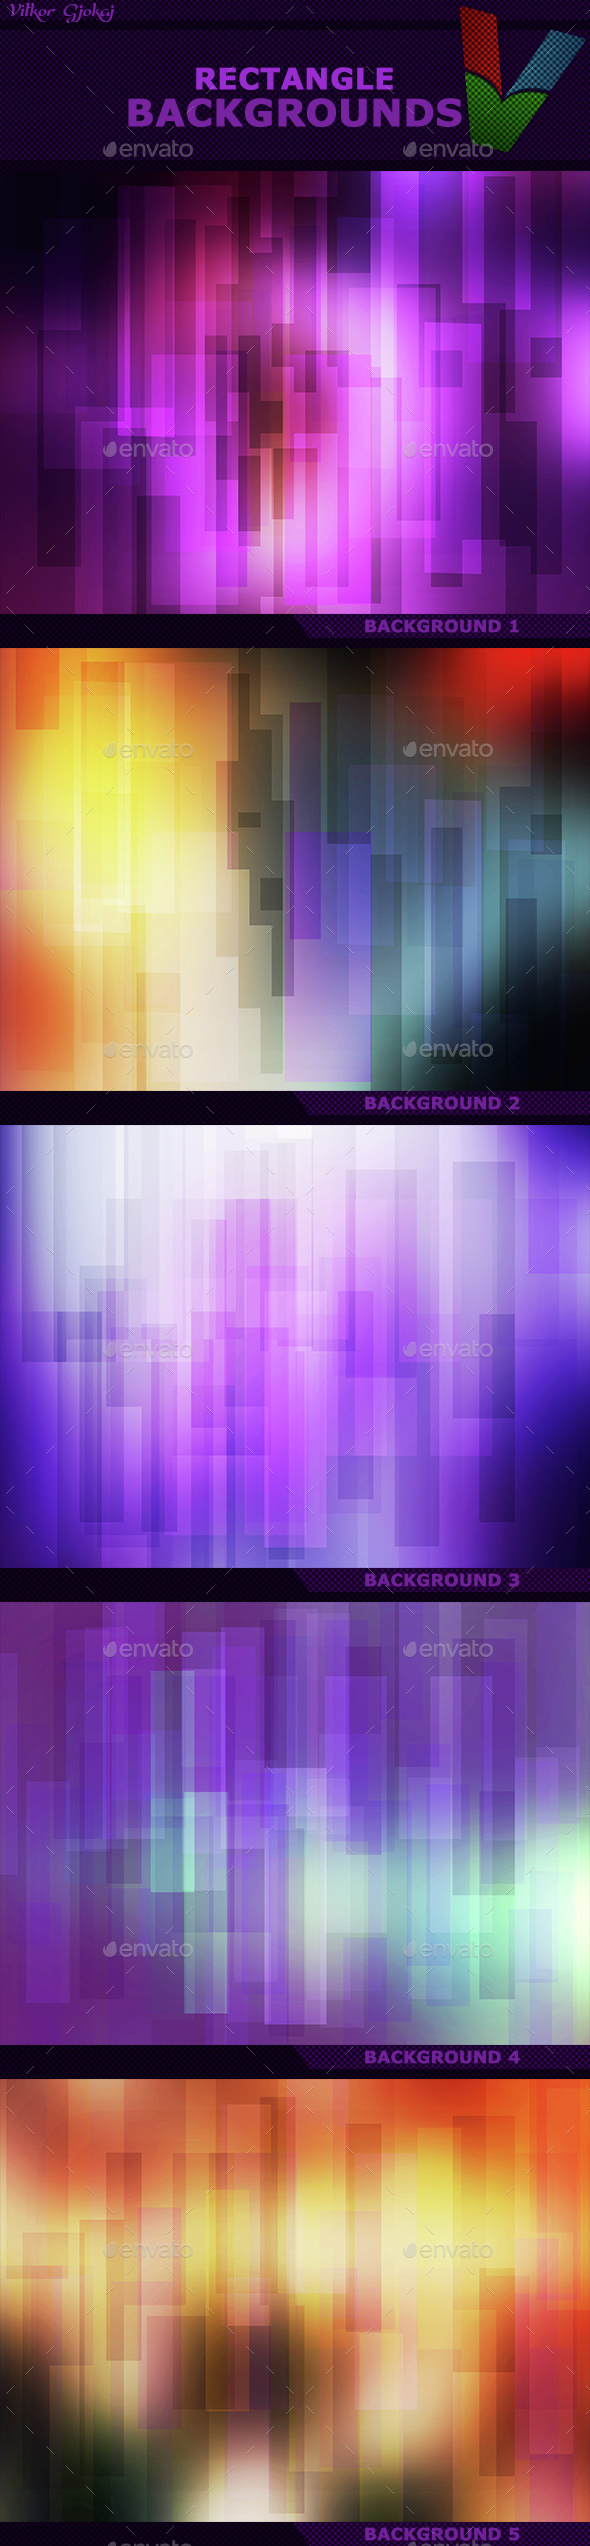 Rectangle Backgrounds I - Abstract Backgrounds